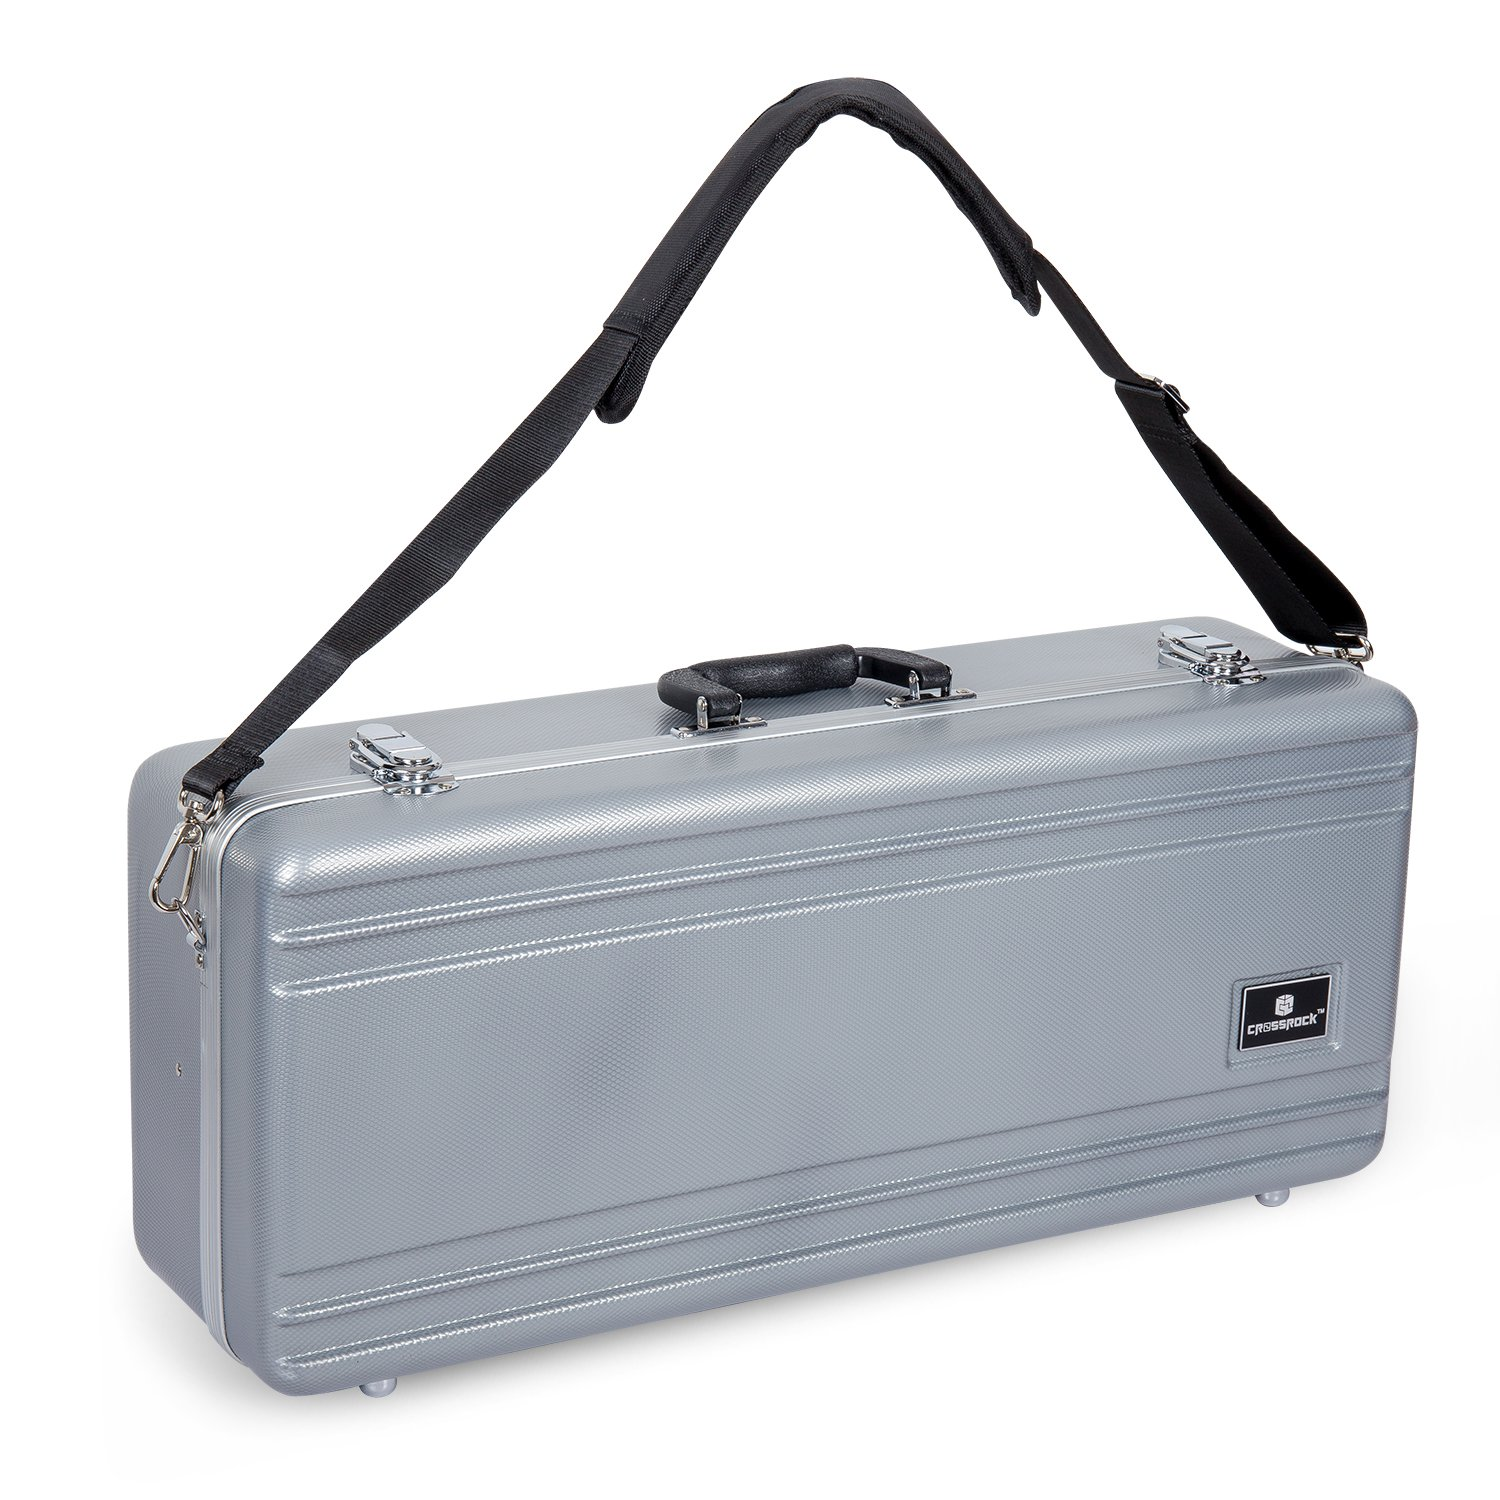 Crossrock CRA860ASSL-R Alto Saxophone Case- Rectangular ABS Molded with Single Shoulder Strap, Silver Crossrock Case Company